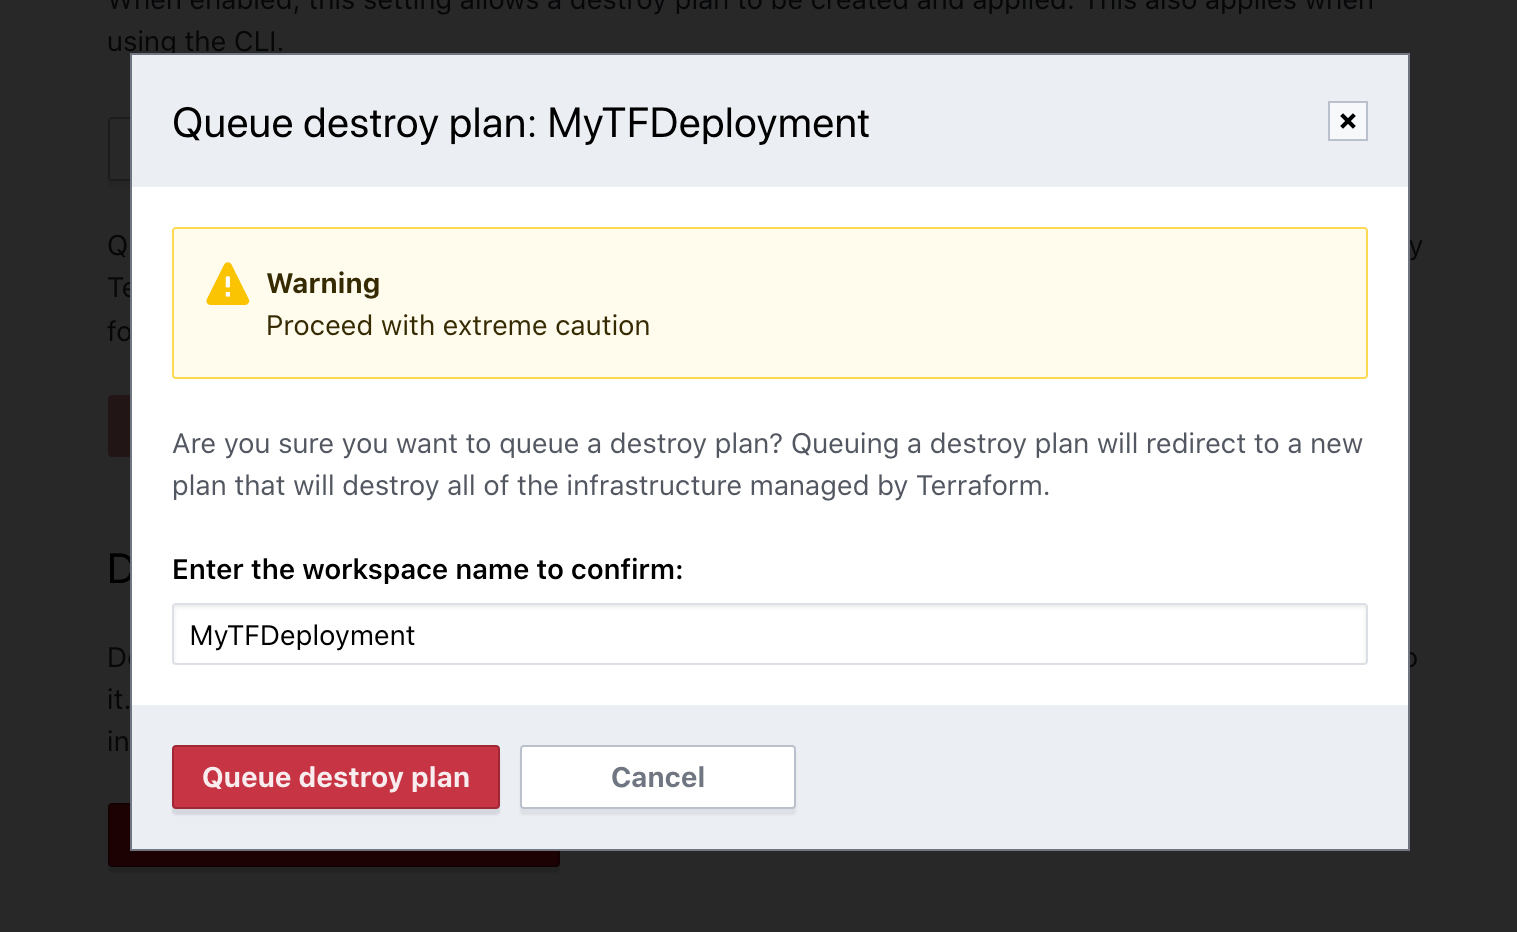 Enter workspace name to confirm destroy plan